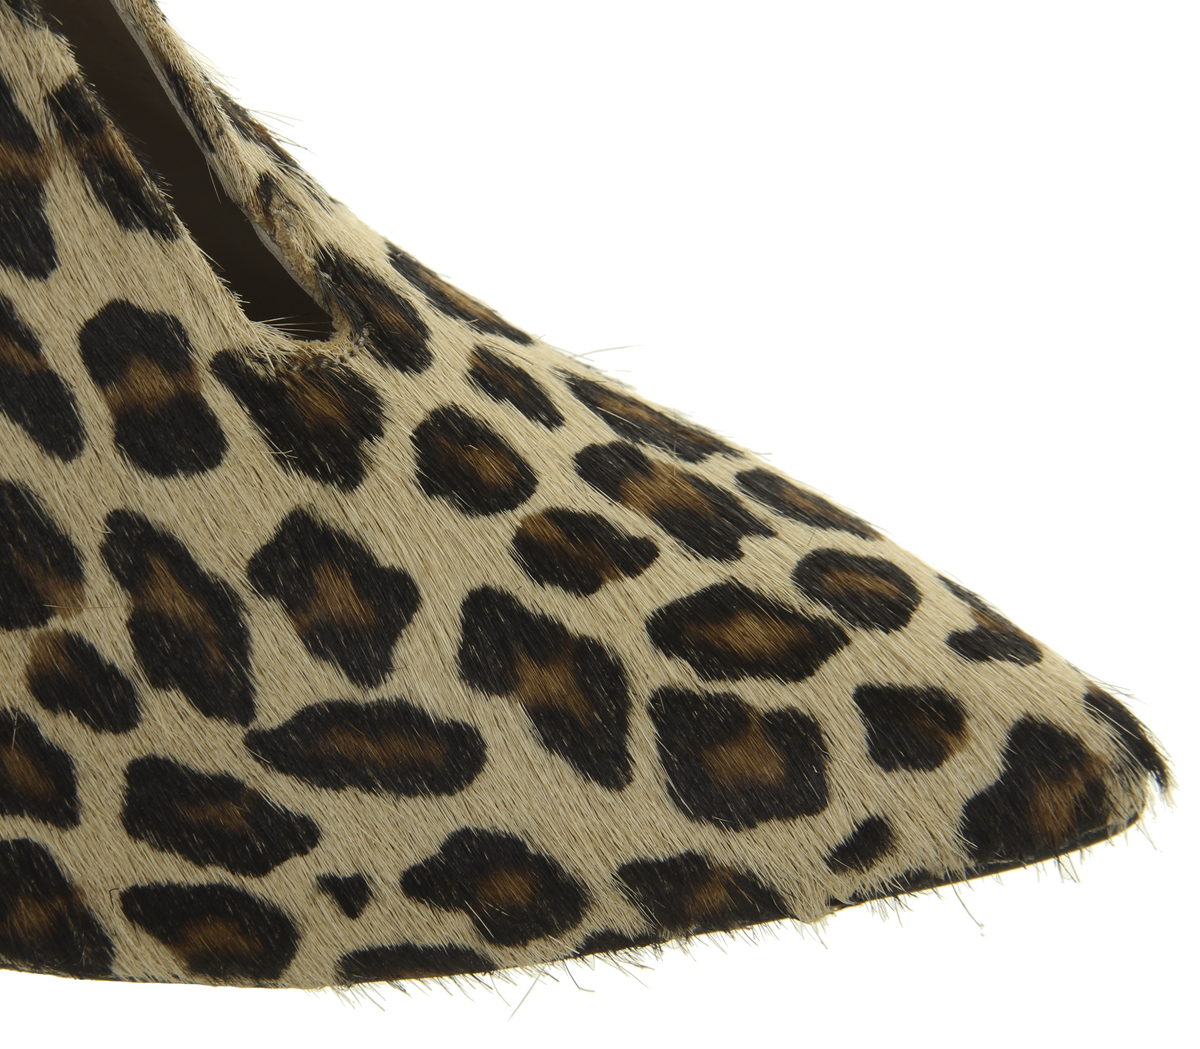 c221fb83181 Details about Womens Office Mojo Shoe Boots Leopard Pony Effect Heels